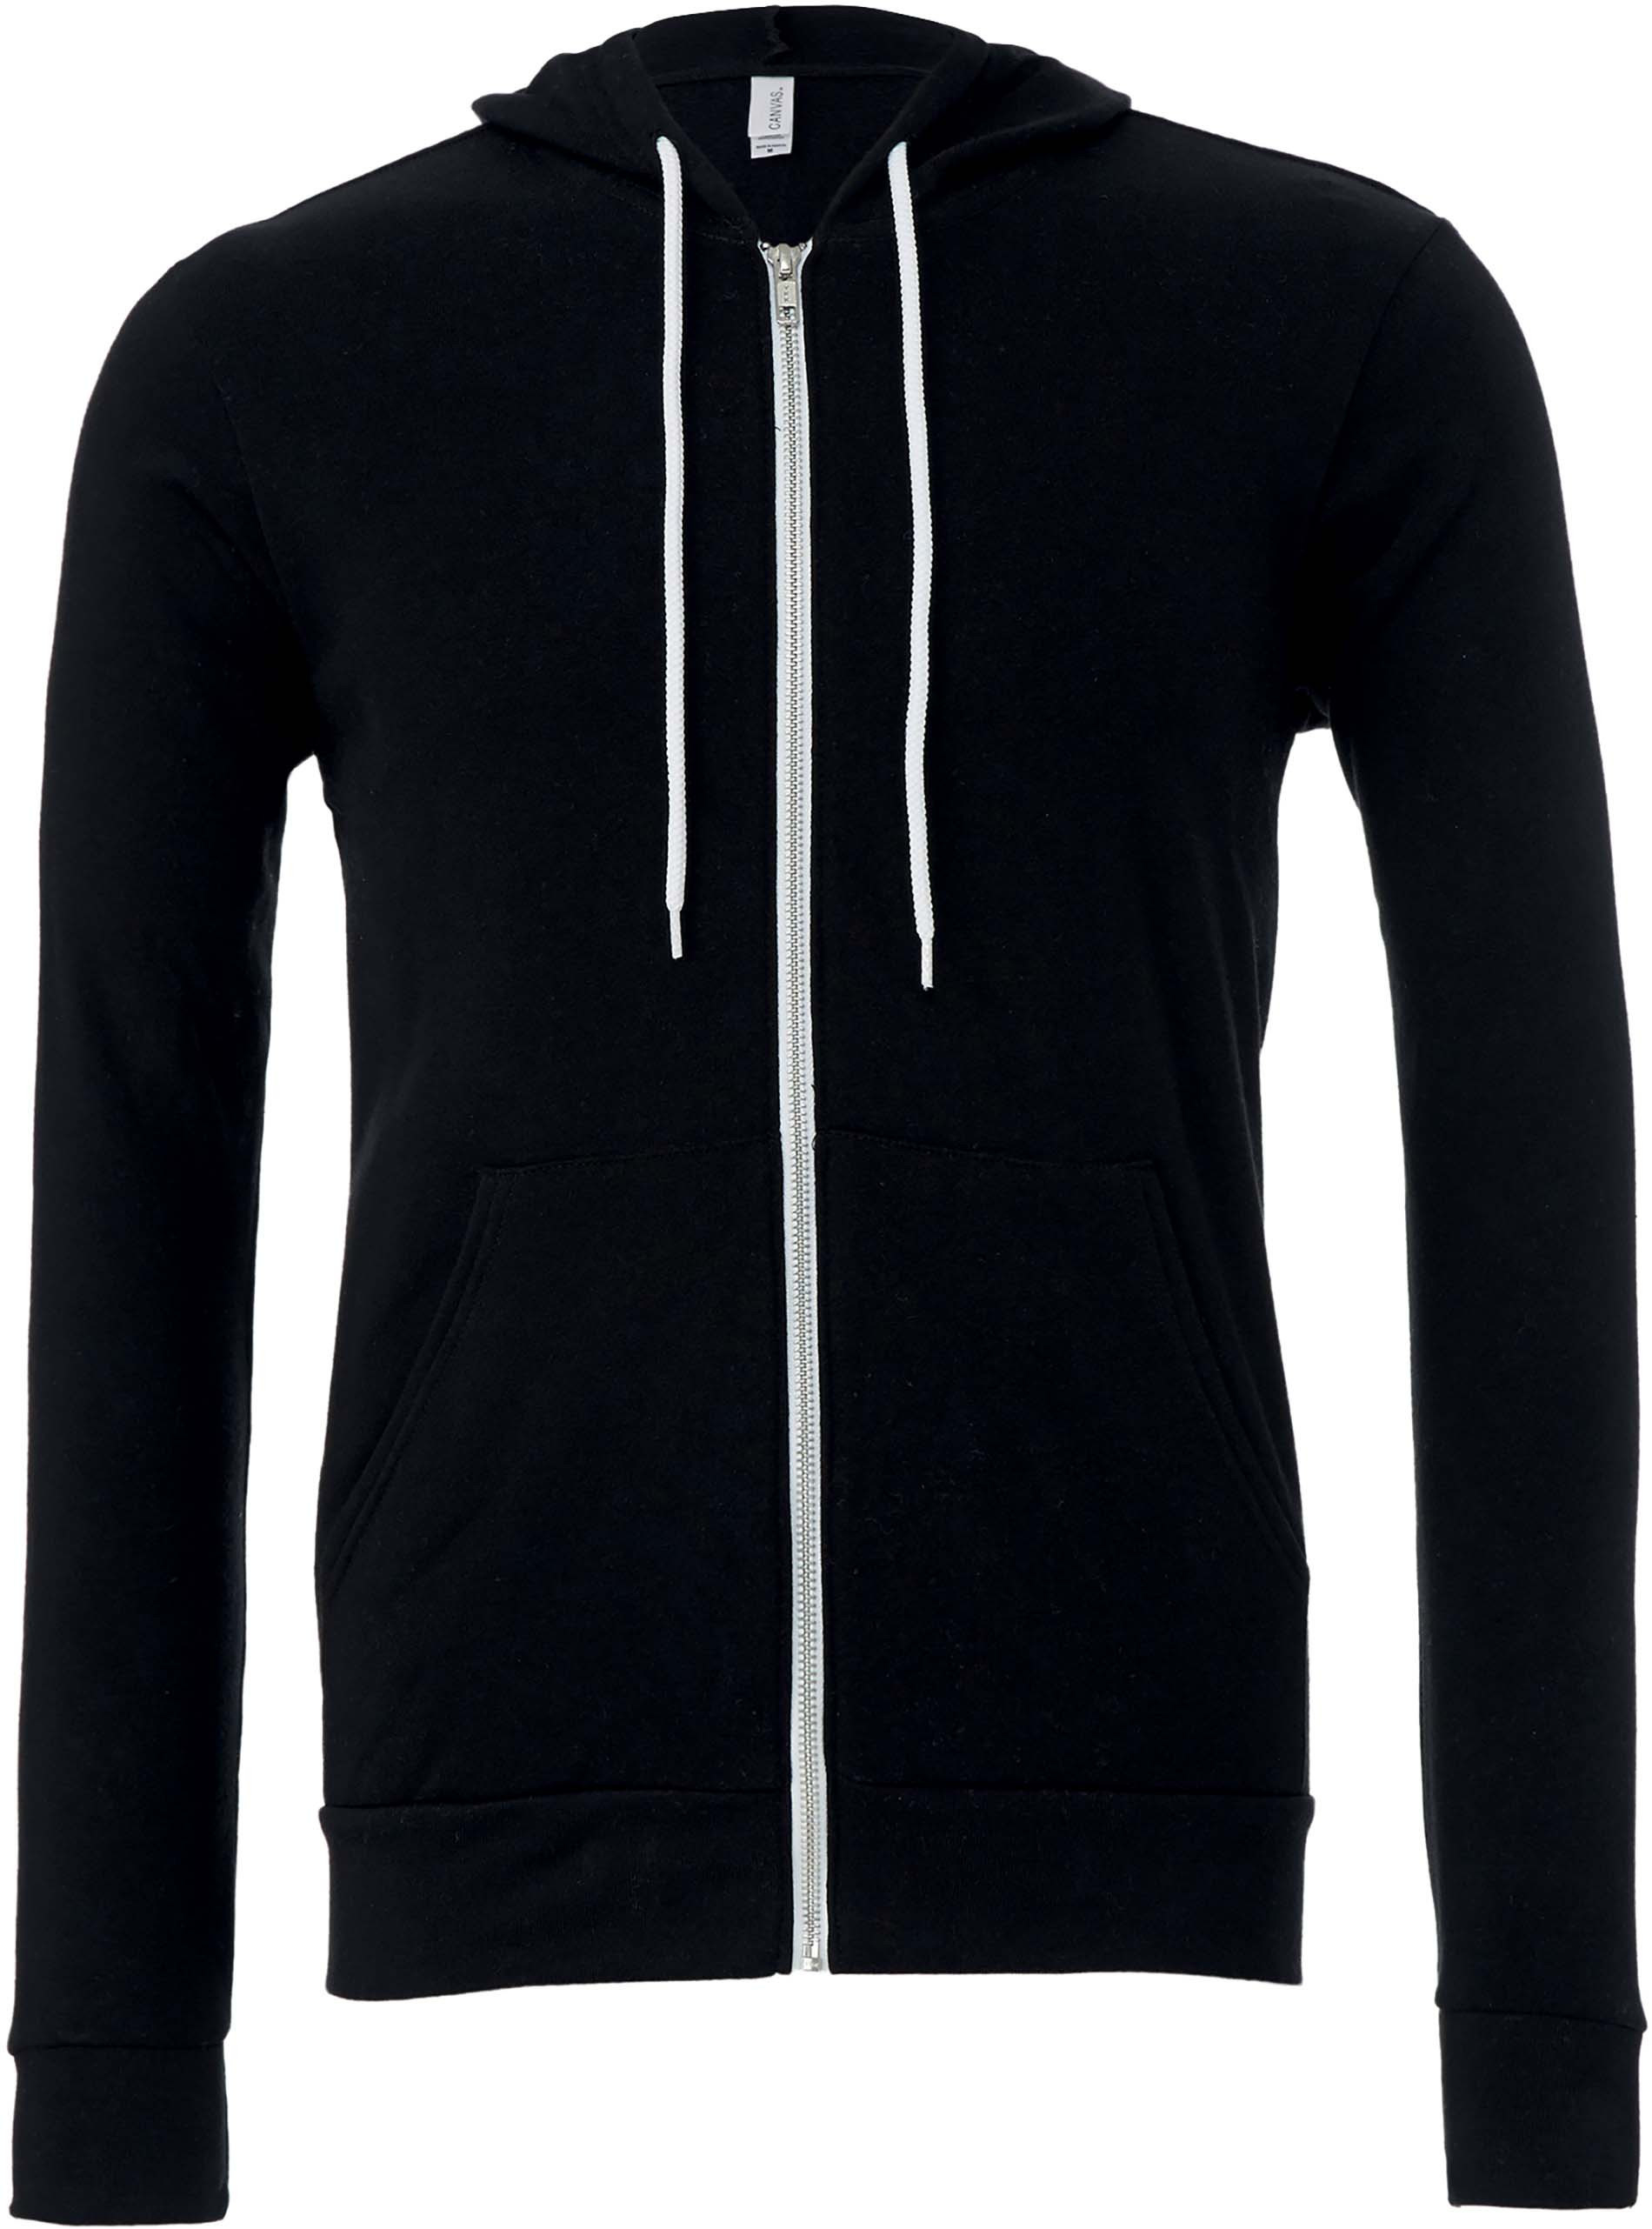 Sweat-shirt zippé capuche unisexe